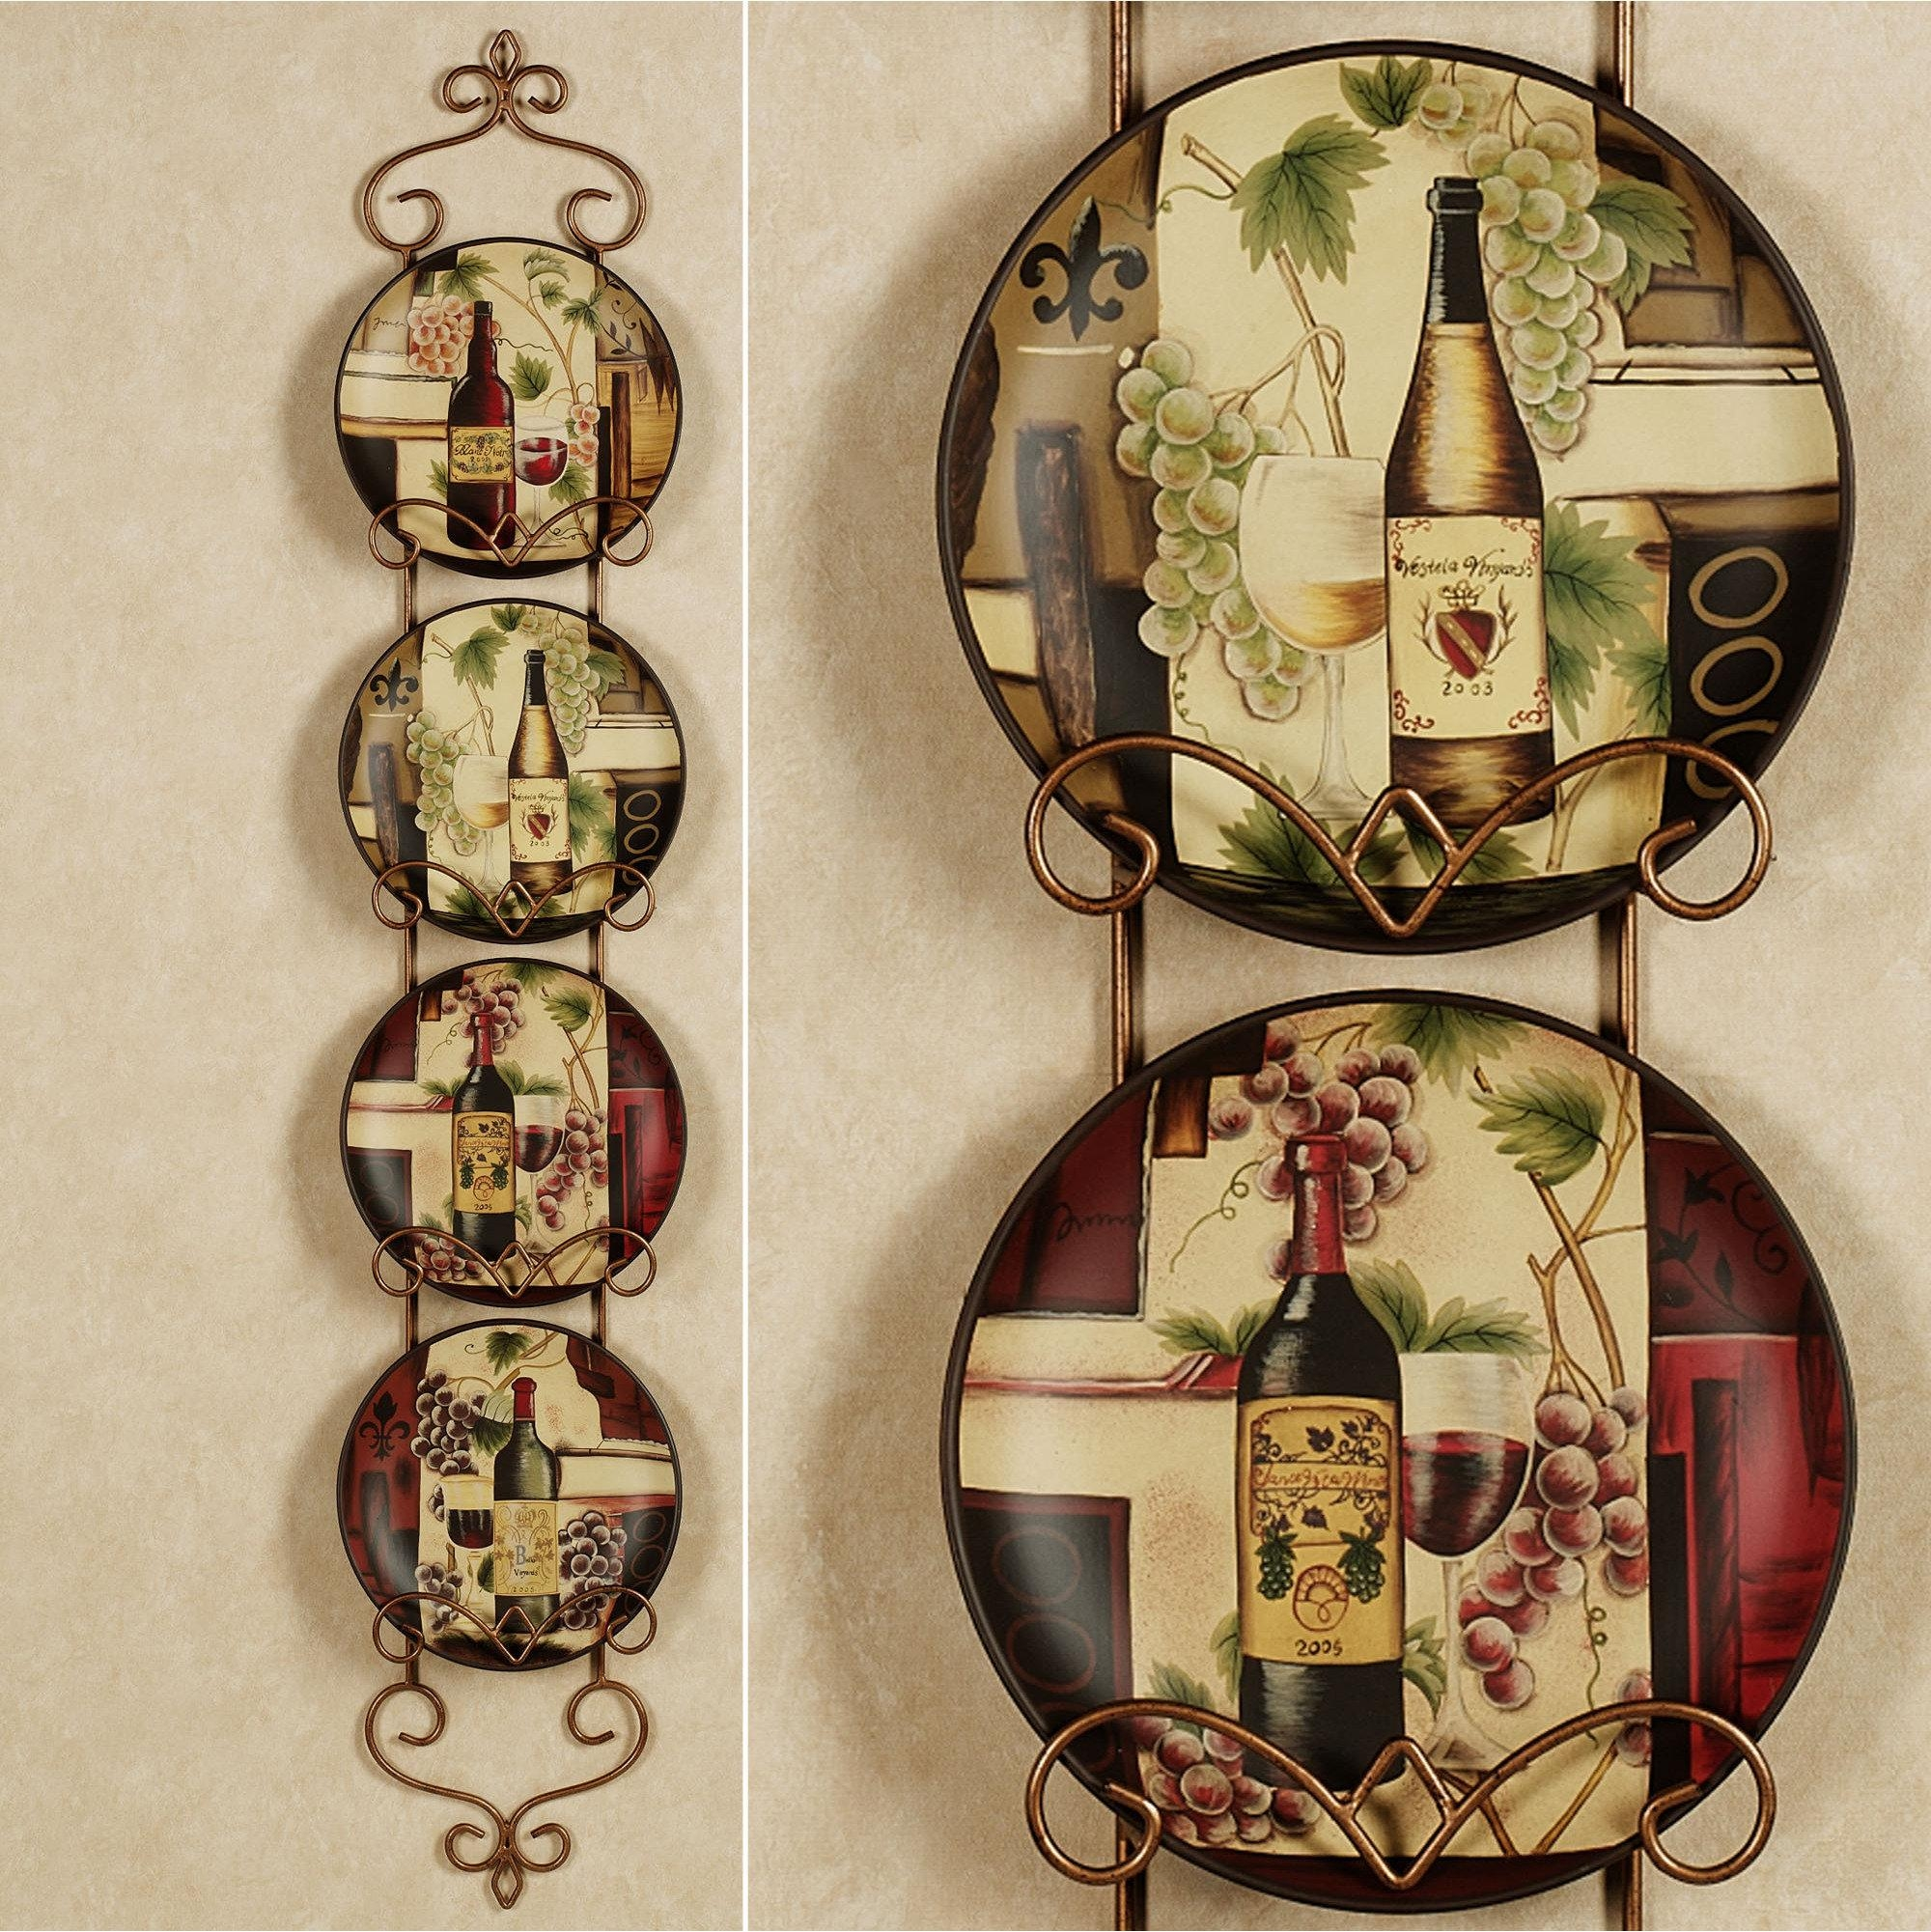 Italian Wall Art For Kitchen | Dzqxh In Italian Wall Art For The Kitchen (View 7 of 20)